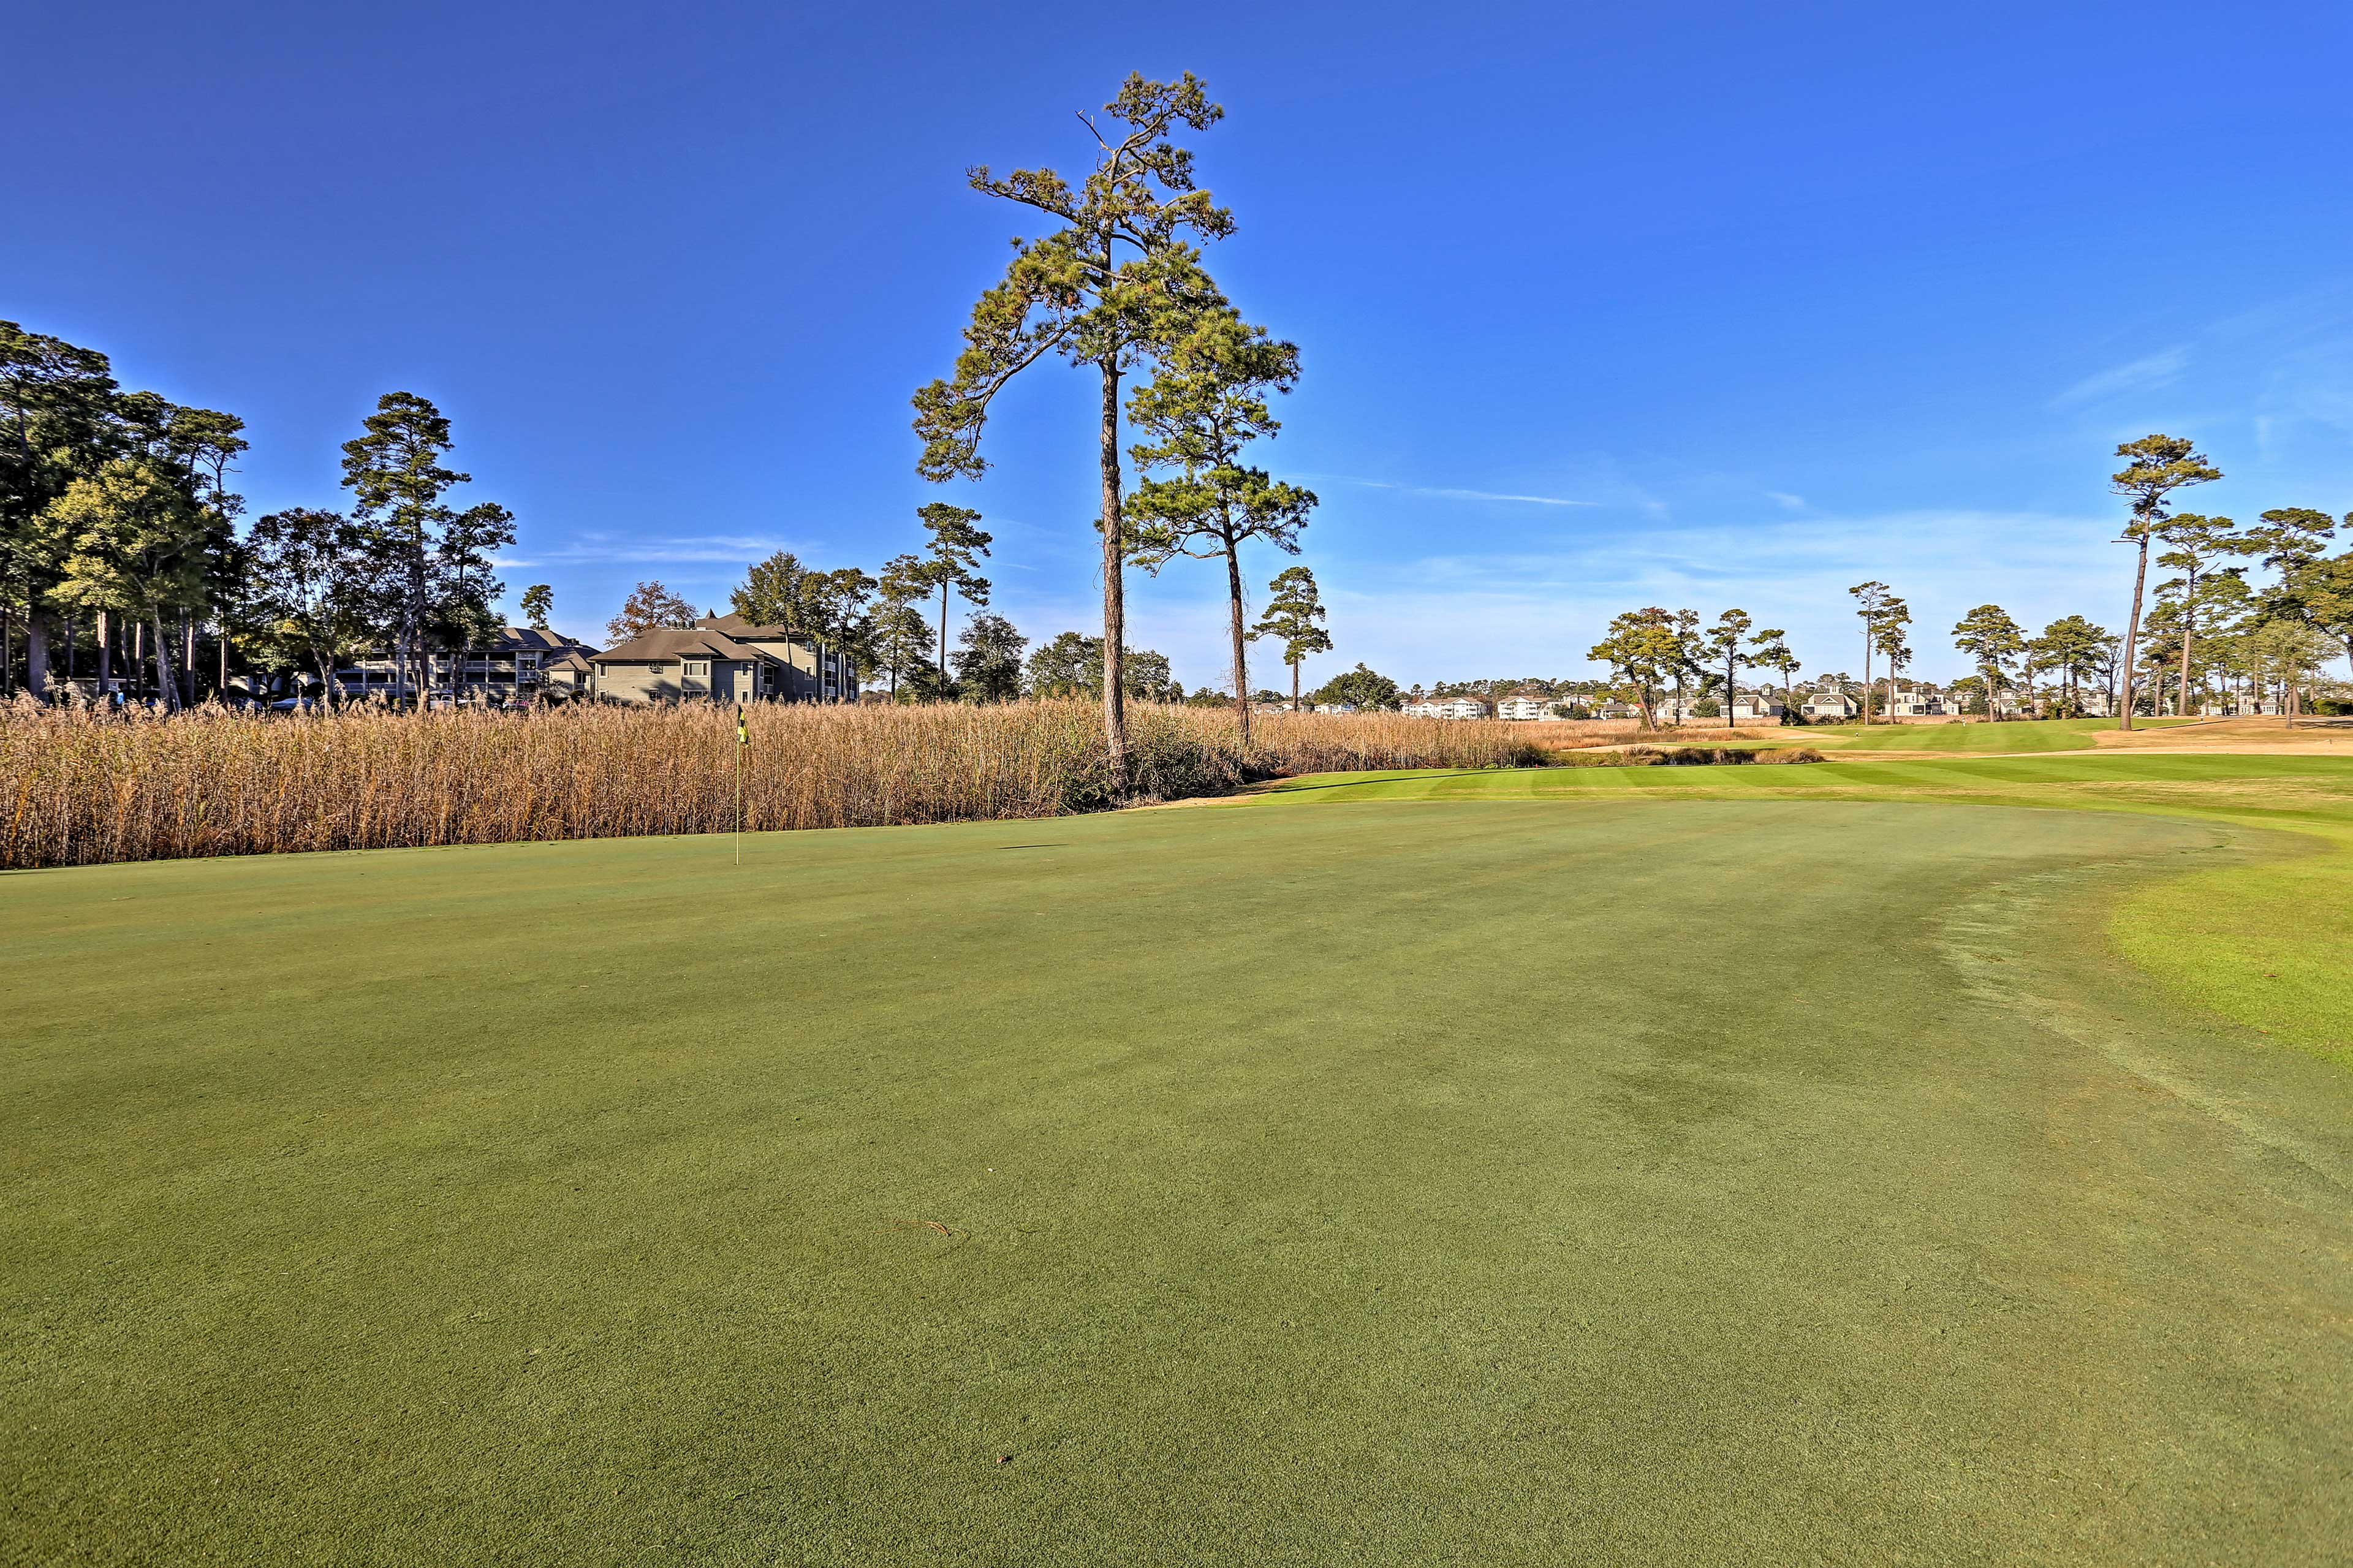 Hit the links at the on-site golf course.